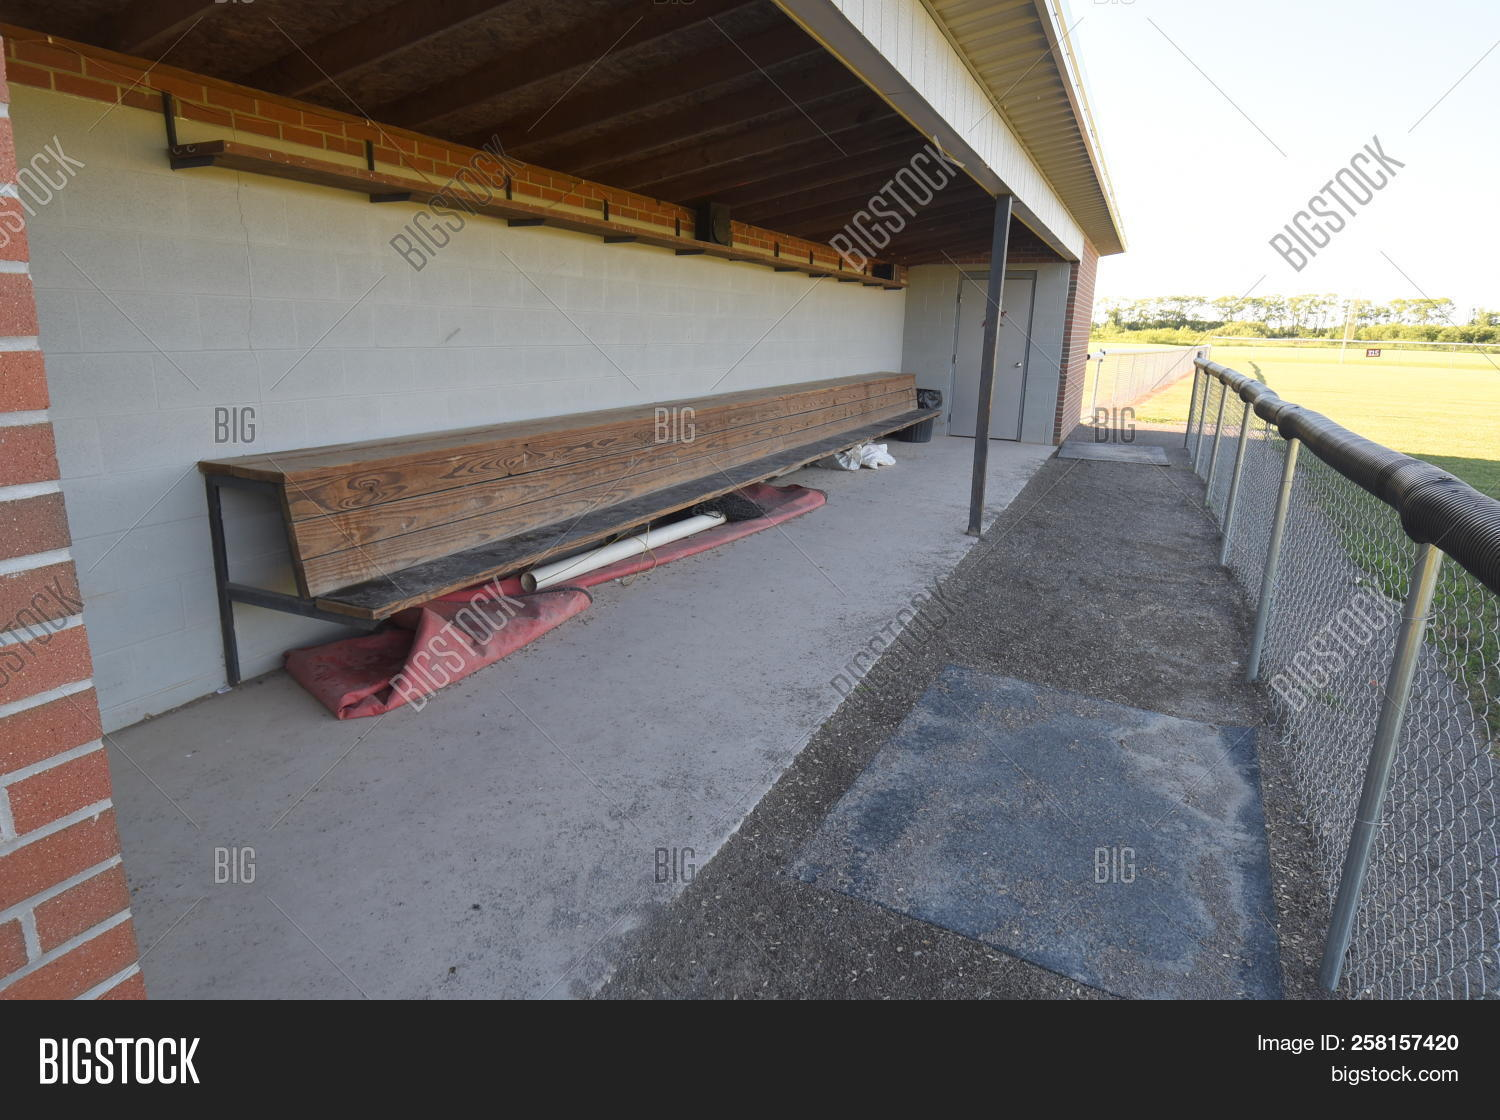 Incredible Baseball Dugout Image Photo Free Trial Bigstock Ocoug Best Dining Table And Chair Ideas Images Ocougorg